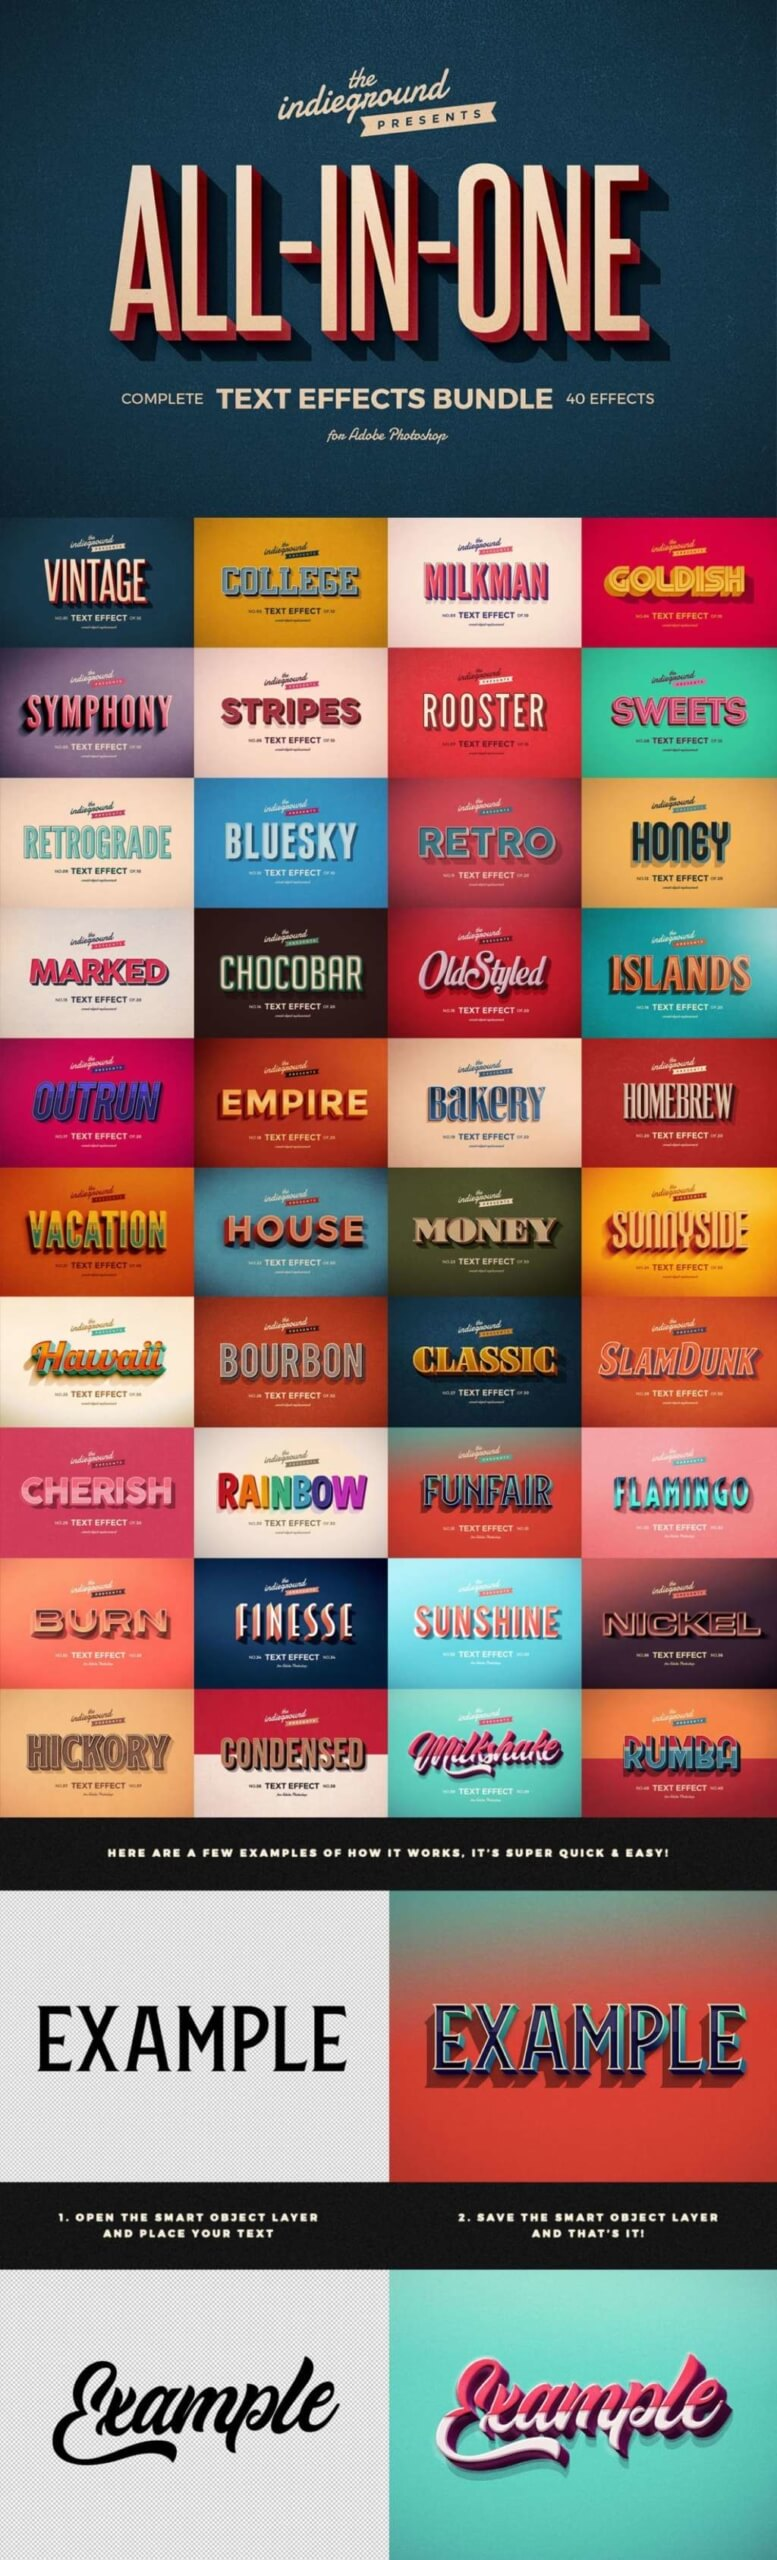 PHOTOSHOP RETRO TEXT EFFECTS COMPLETE COLLECTION